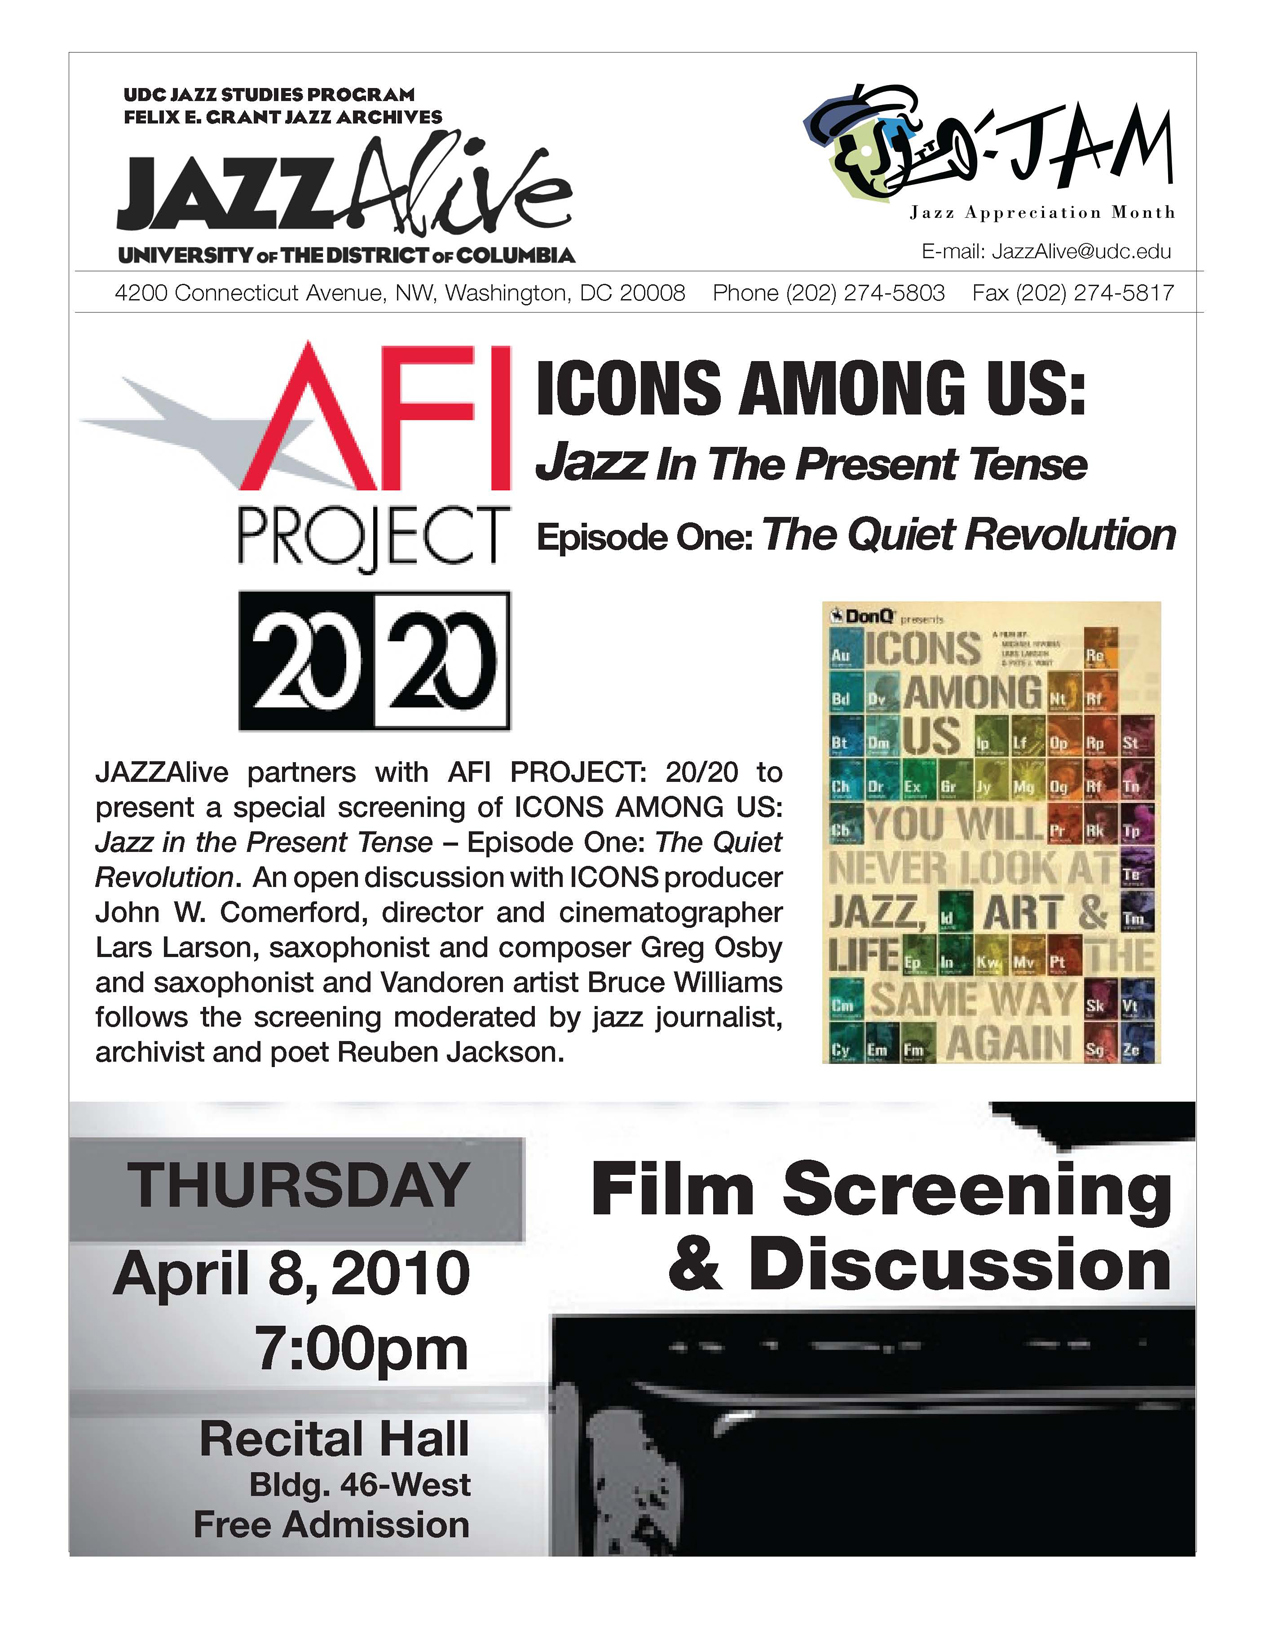 Jam@Udc 2010 - Icons Among Us: Jazz in the Present Tense; Episode One: The Quiet Revolution Film Screening and Discussion - Thursday, April 8, 2010, 7:00 PM - Free and Open to the Public